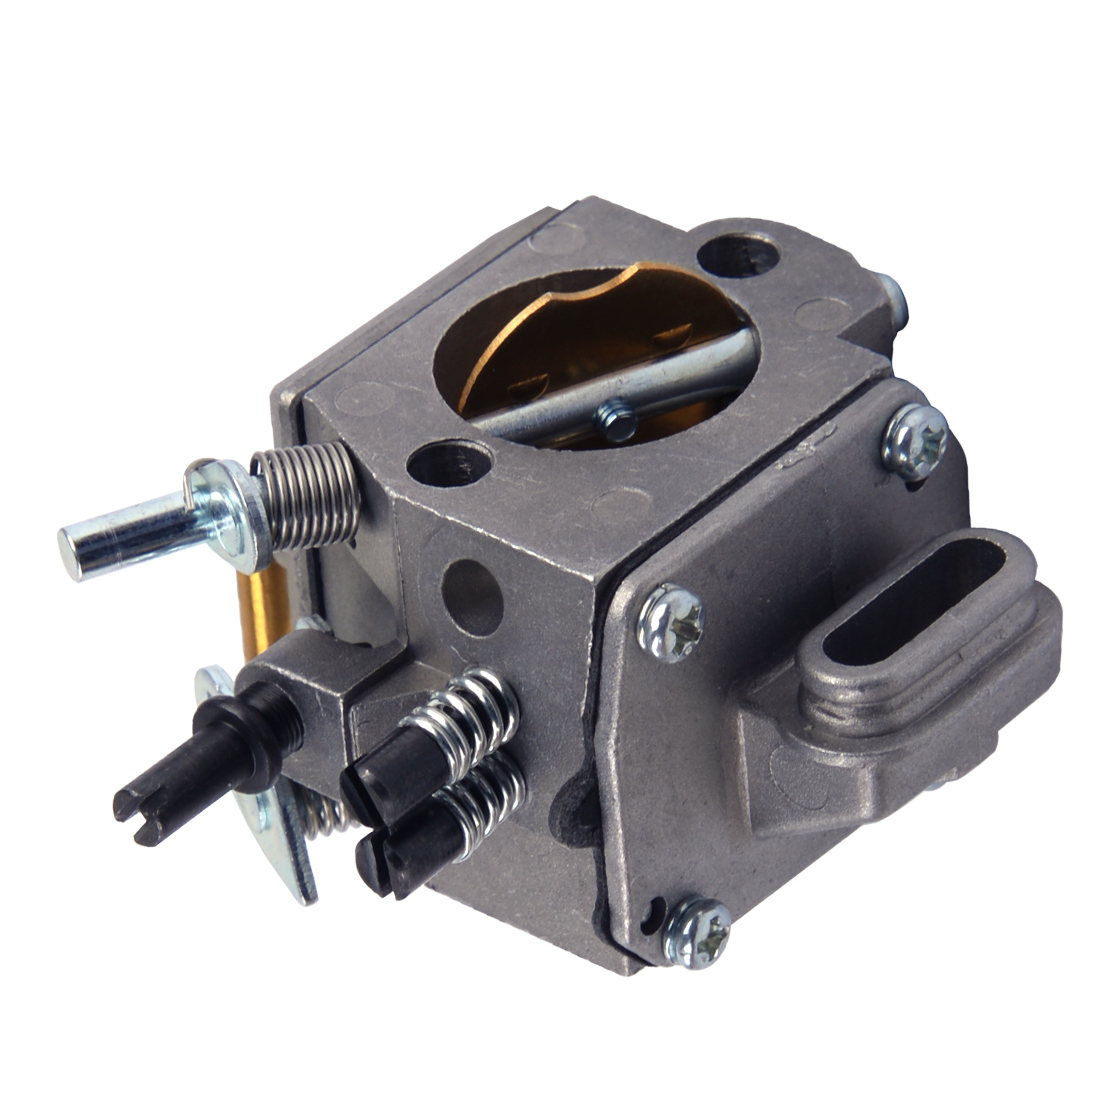 LETAOSK Carburetor Carb 11271200650 Fit For Stihl MS390 MS290 MS310 029 039 290 310 390 Chainsaw